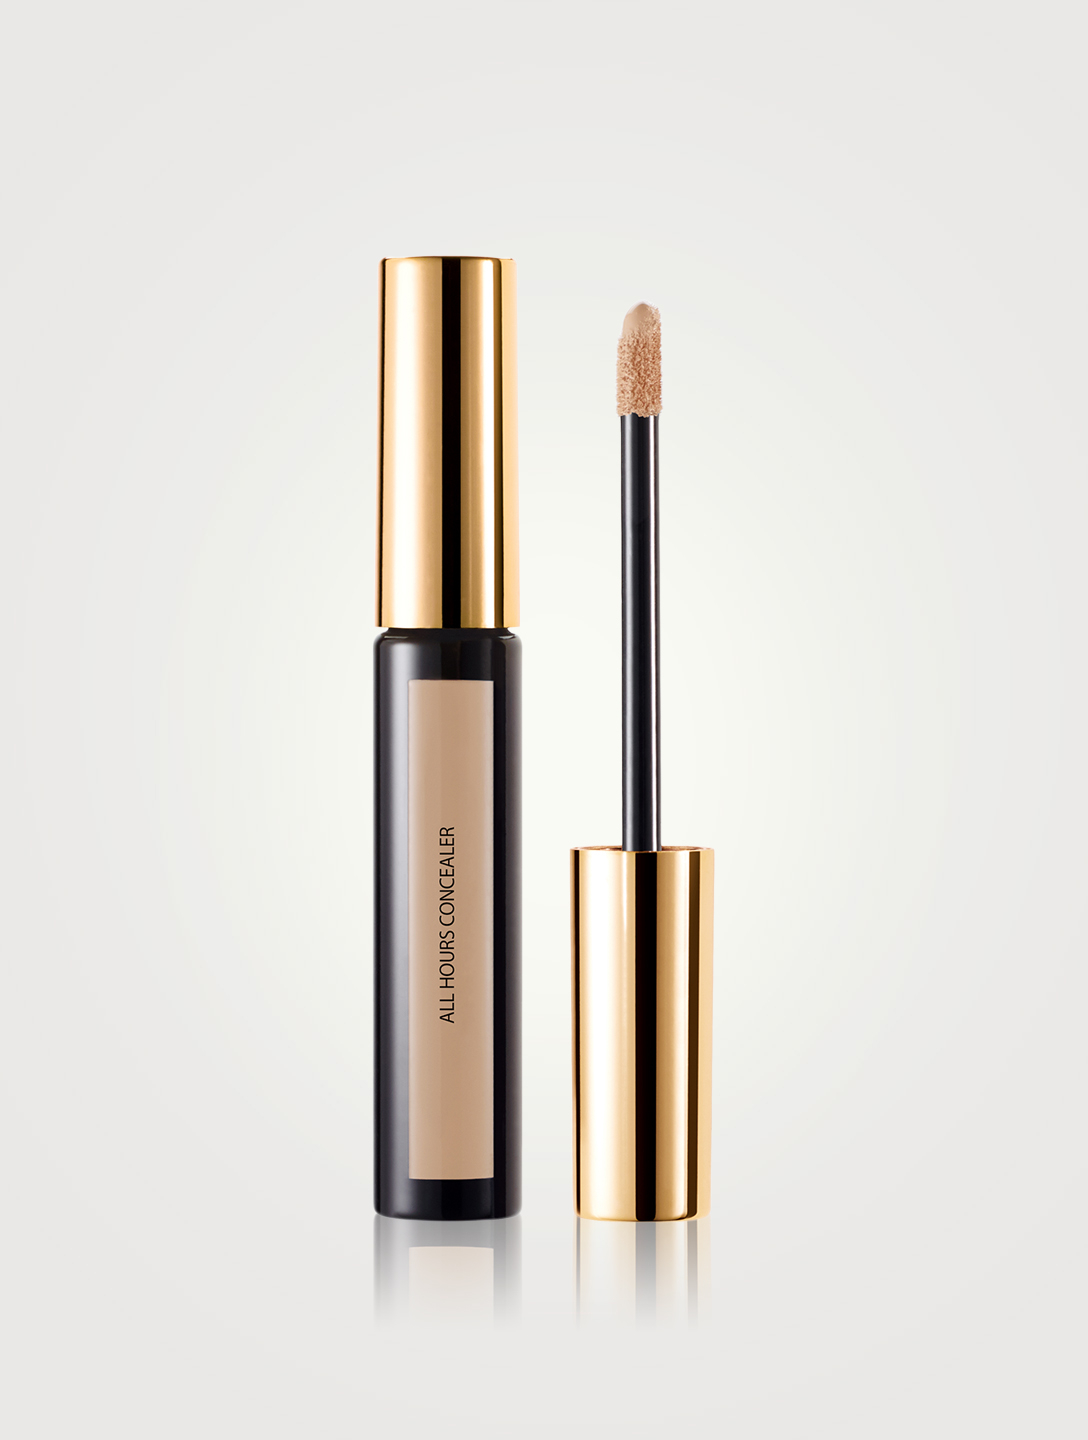 YVES SAINT LAURENT Encre de Peau All Hours Concealer Beauty Neutral